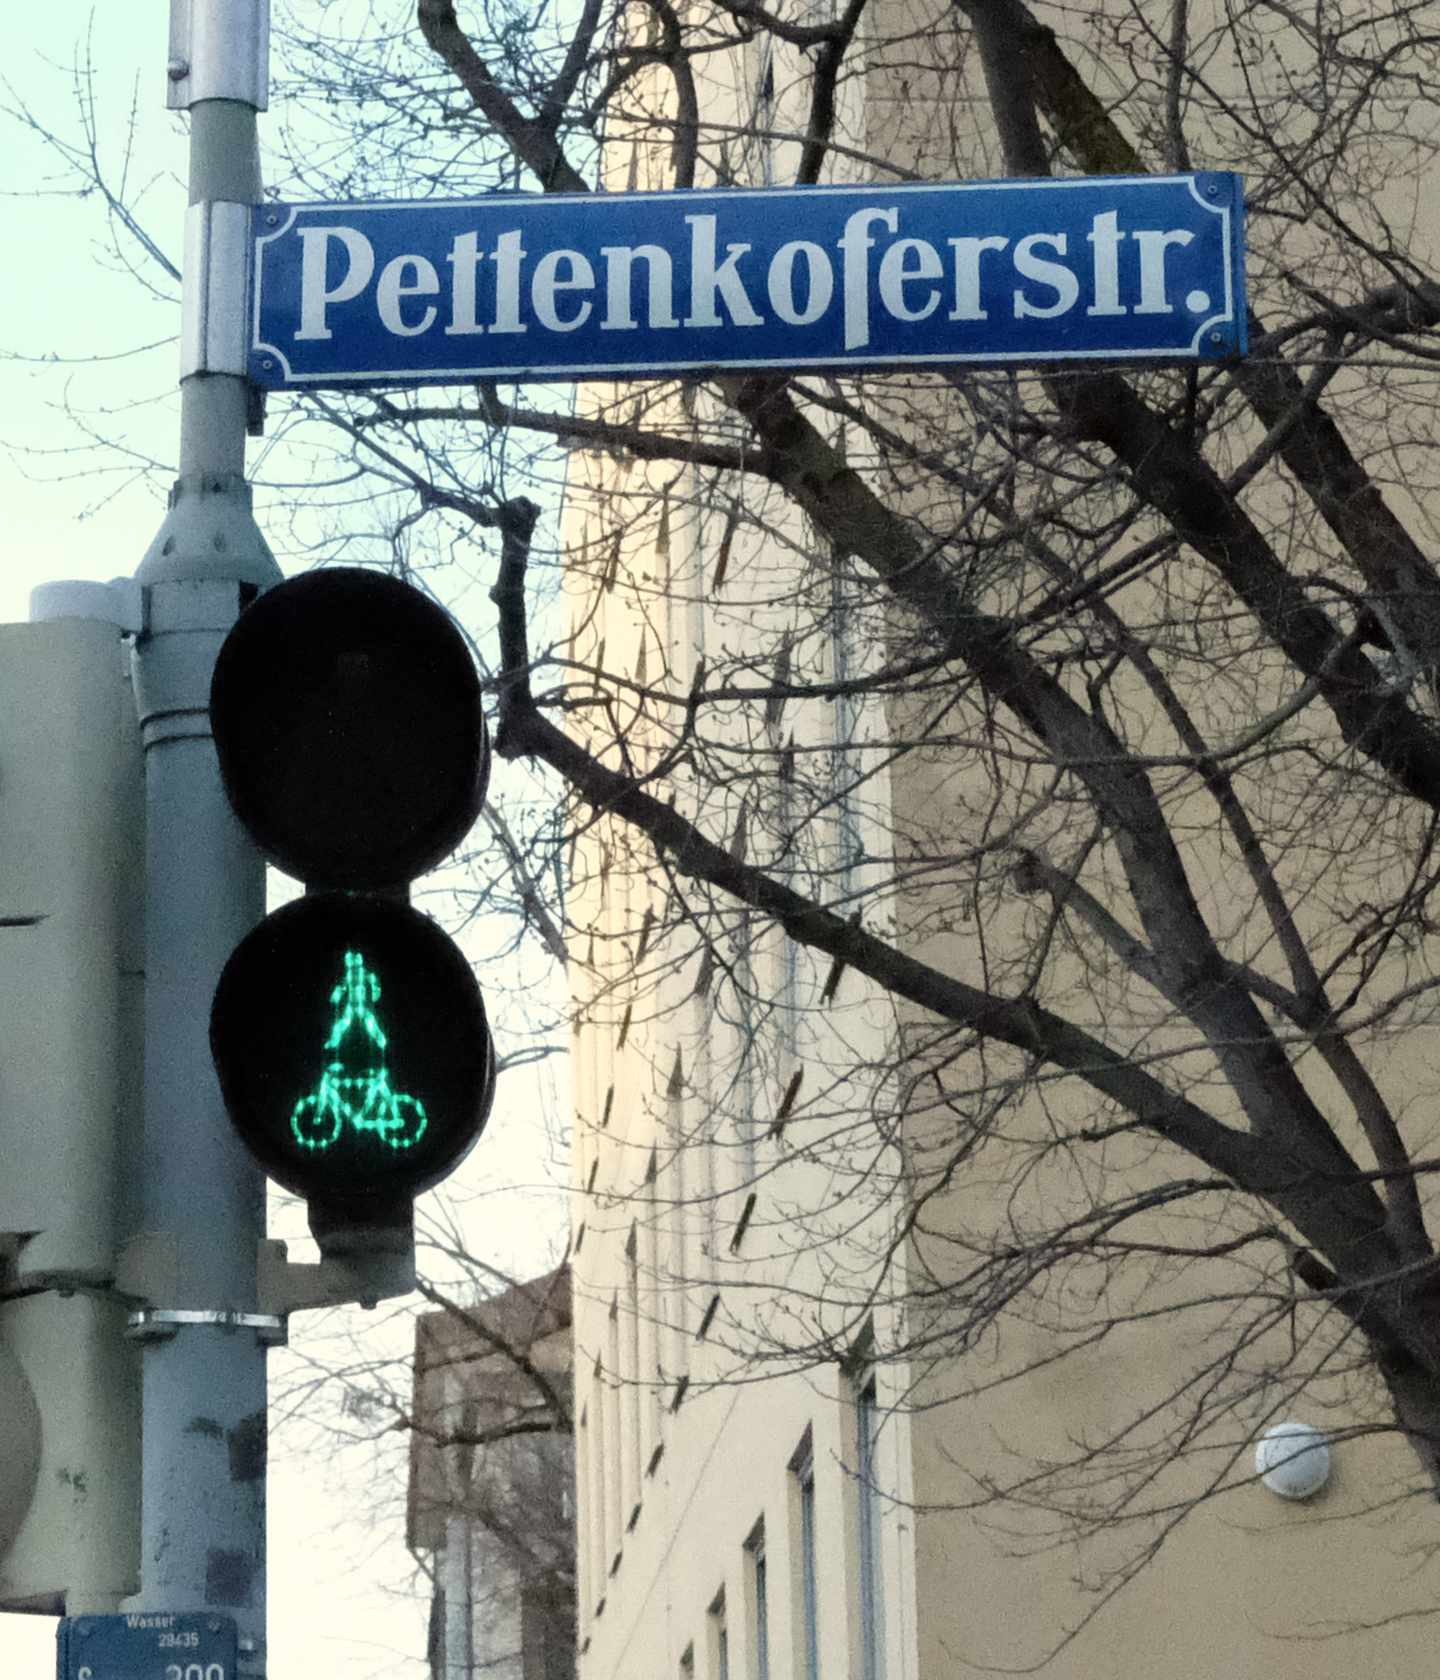 The Pettenkofer Street in Munich